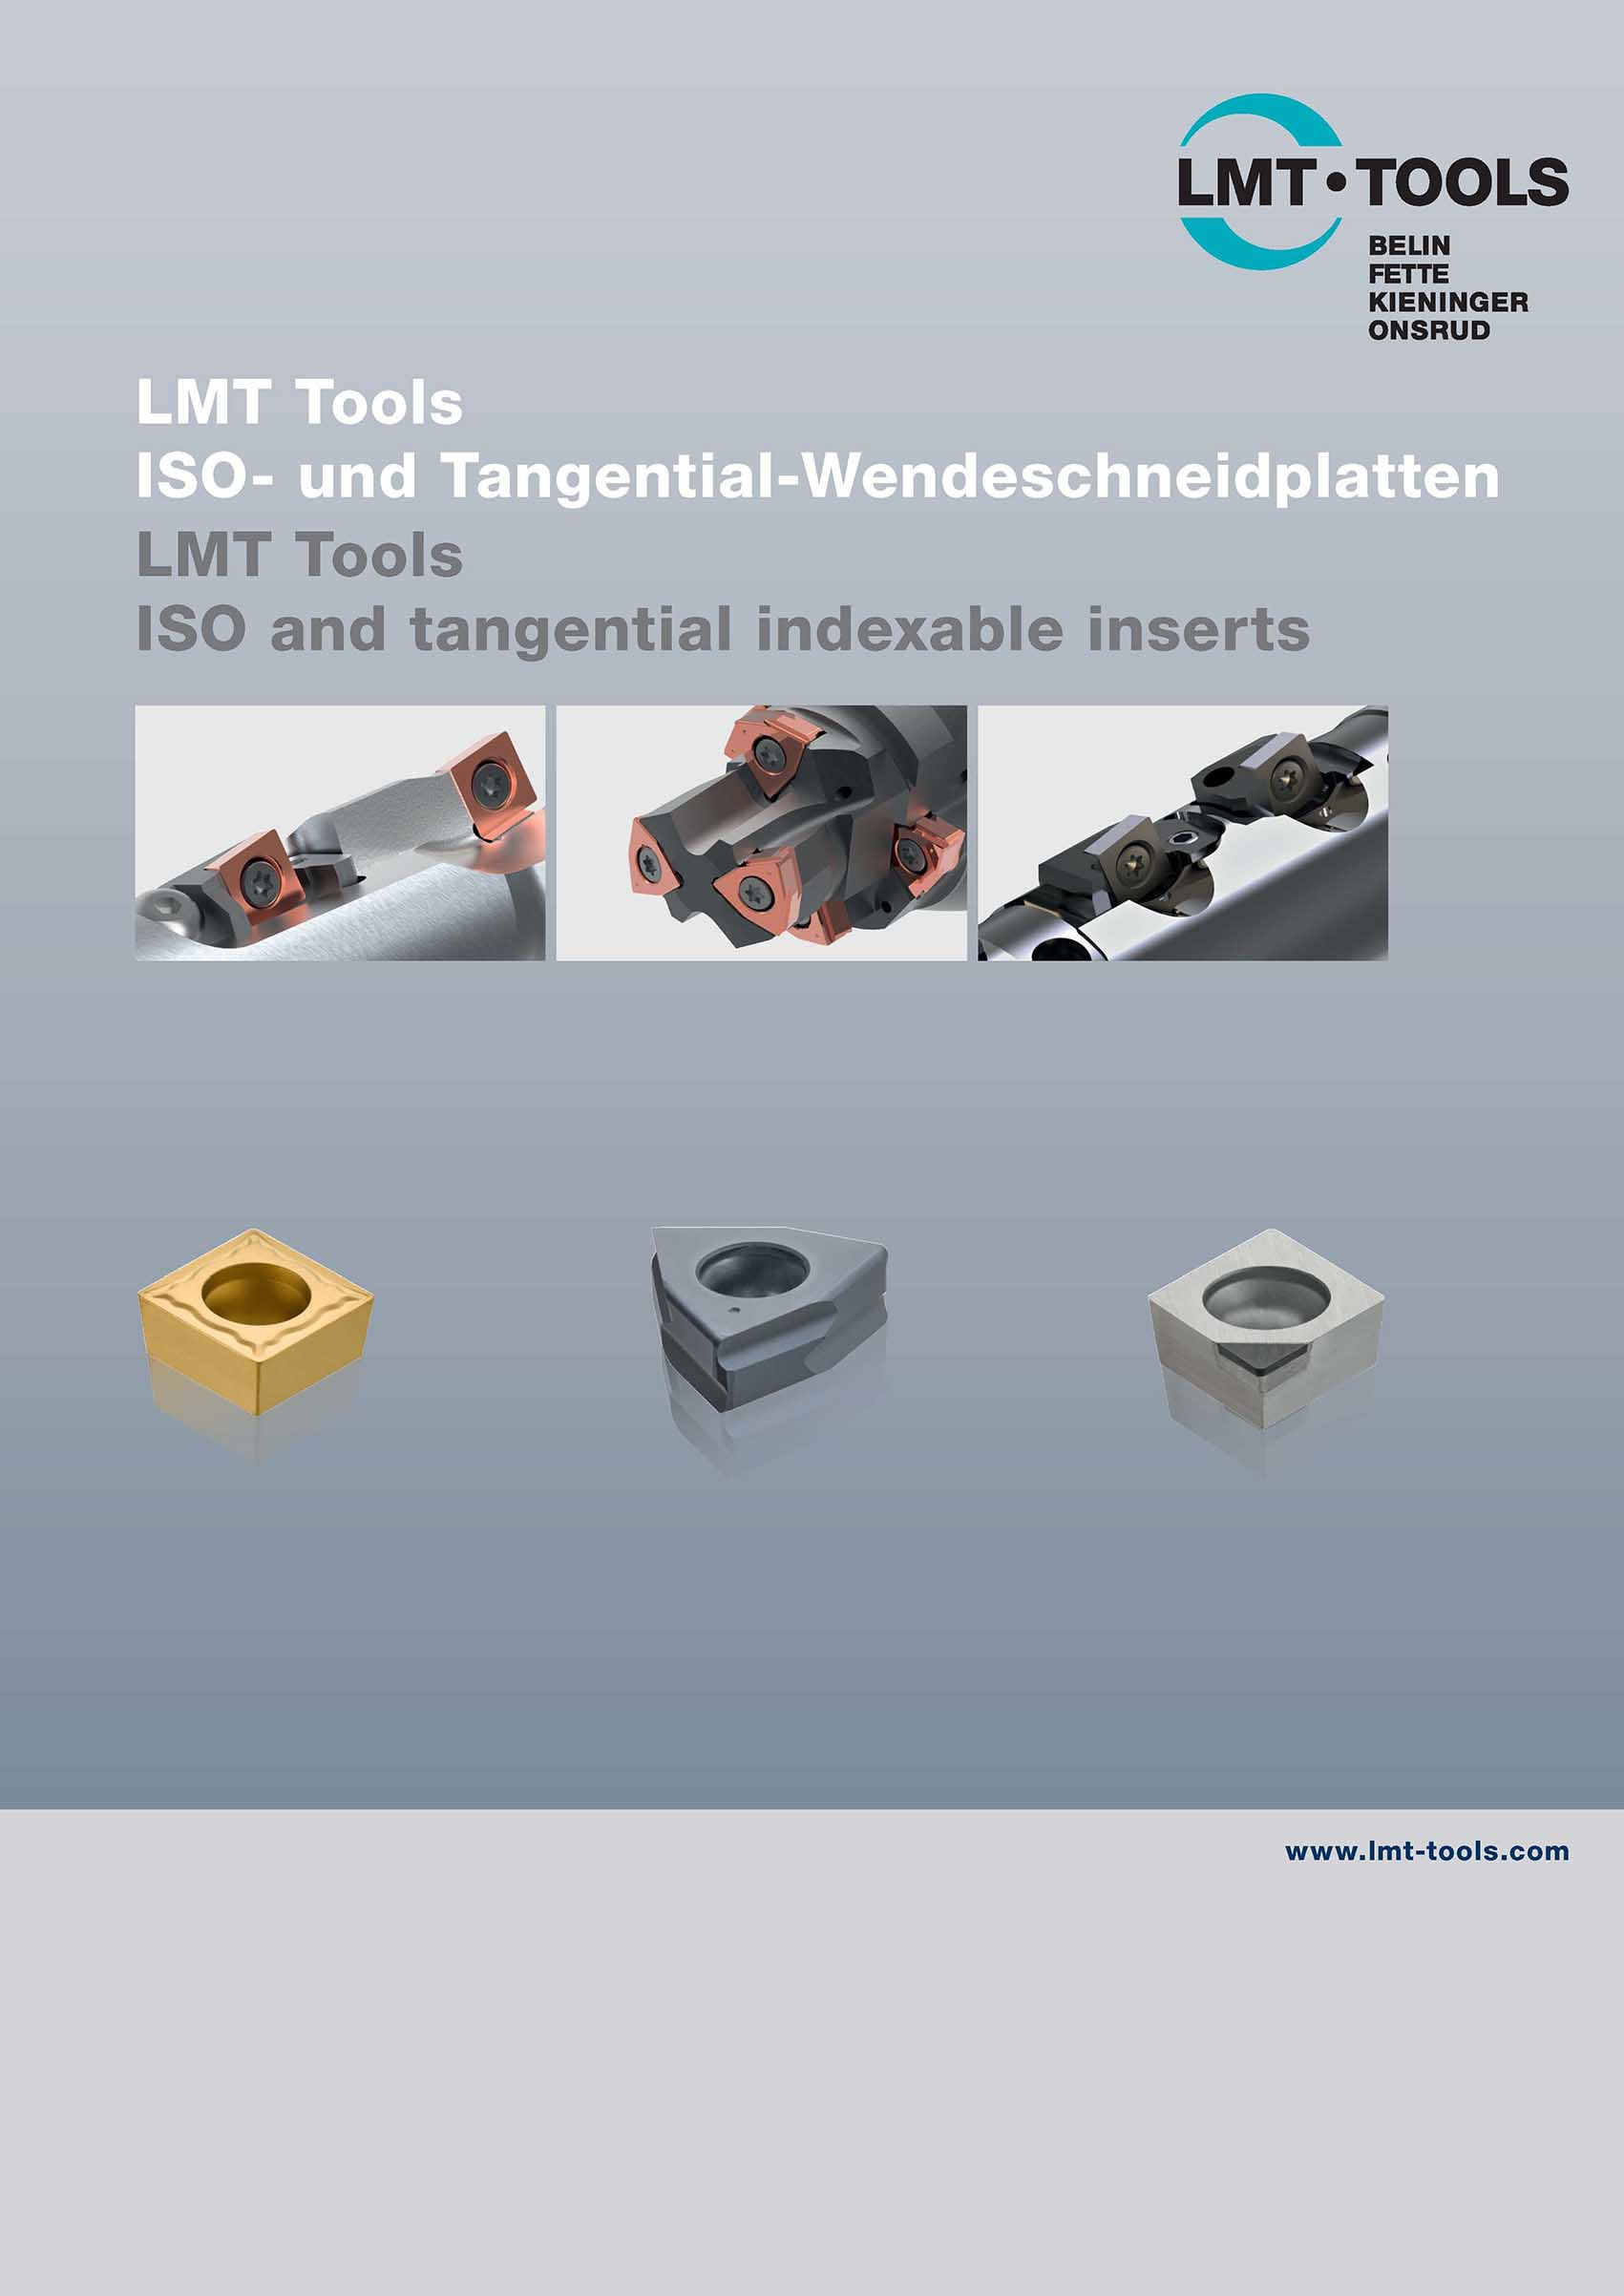 ISO and tangential indexable inserts